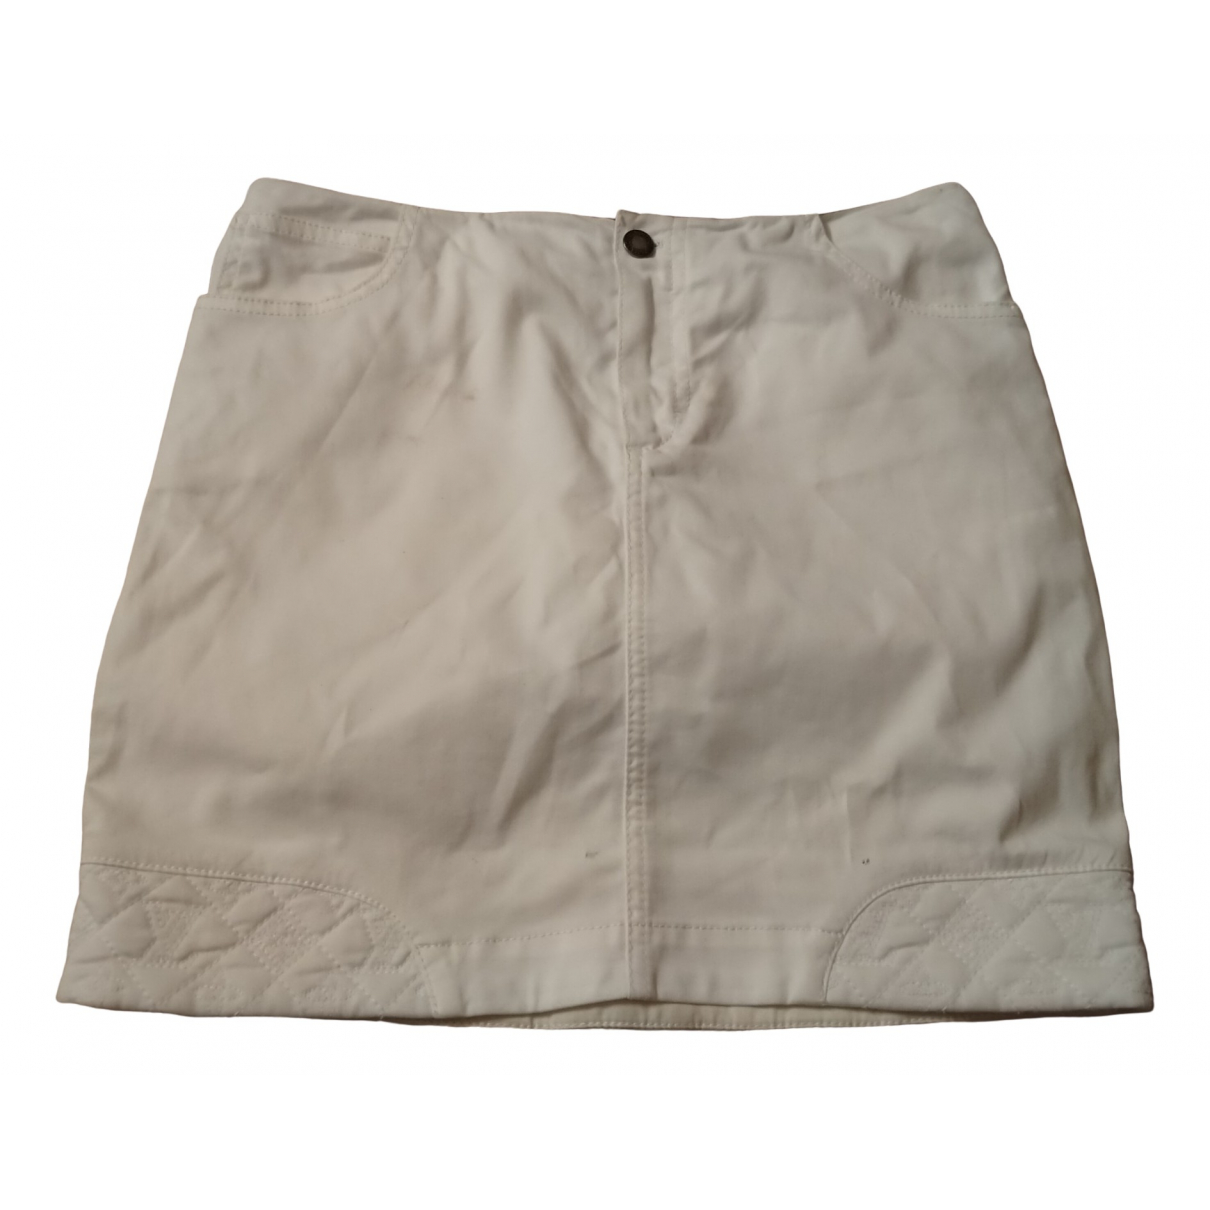 Louis Vuitton \N White Cotton skirt for Women 36 FR